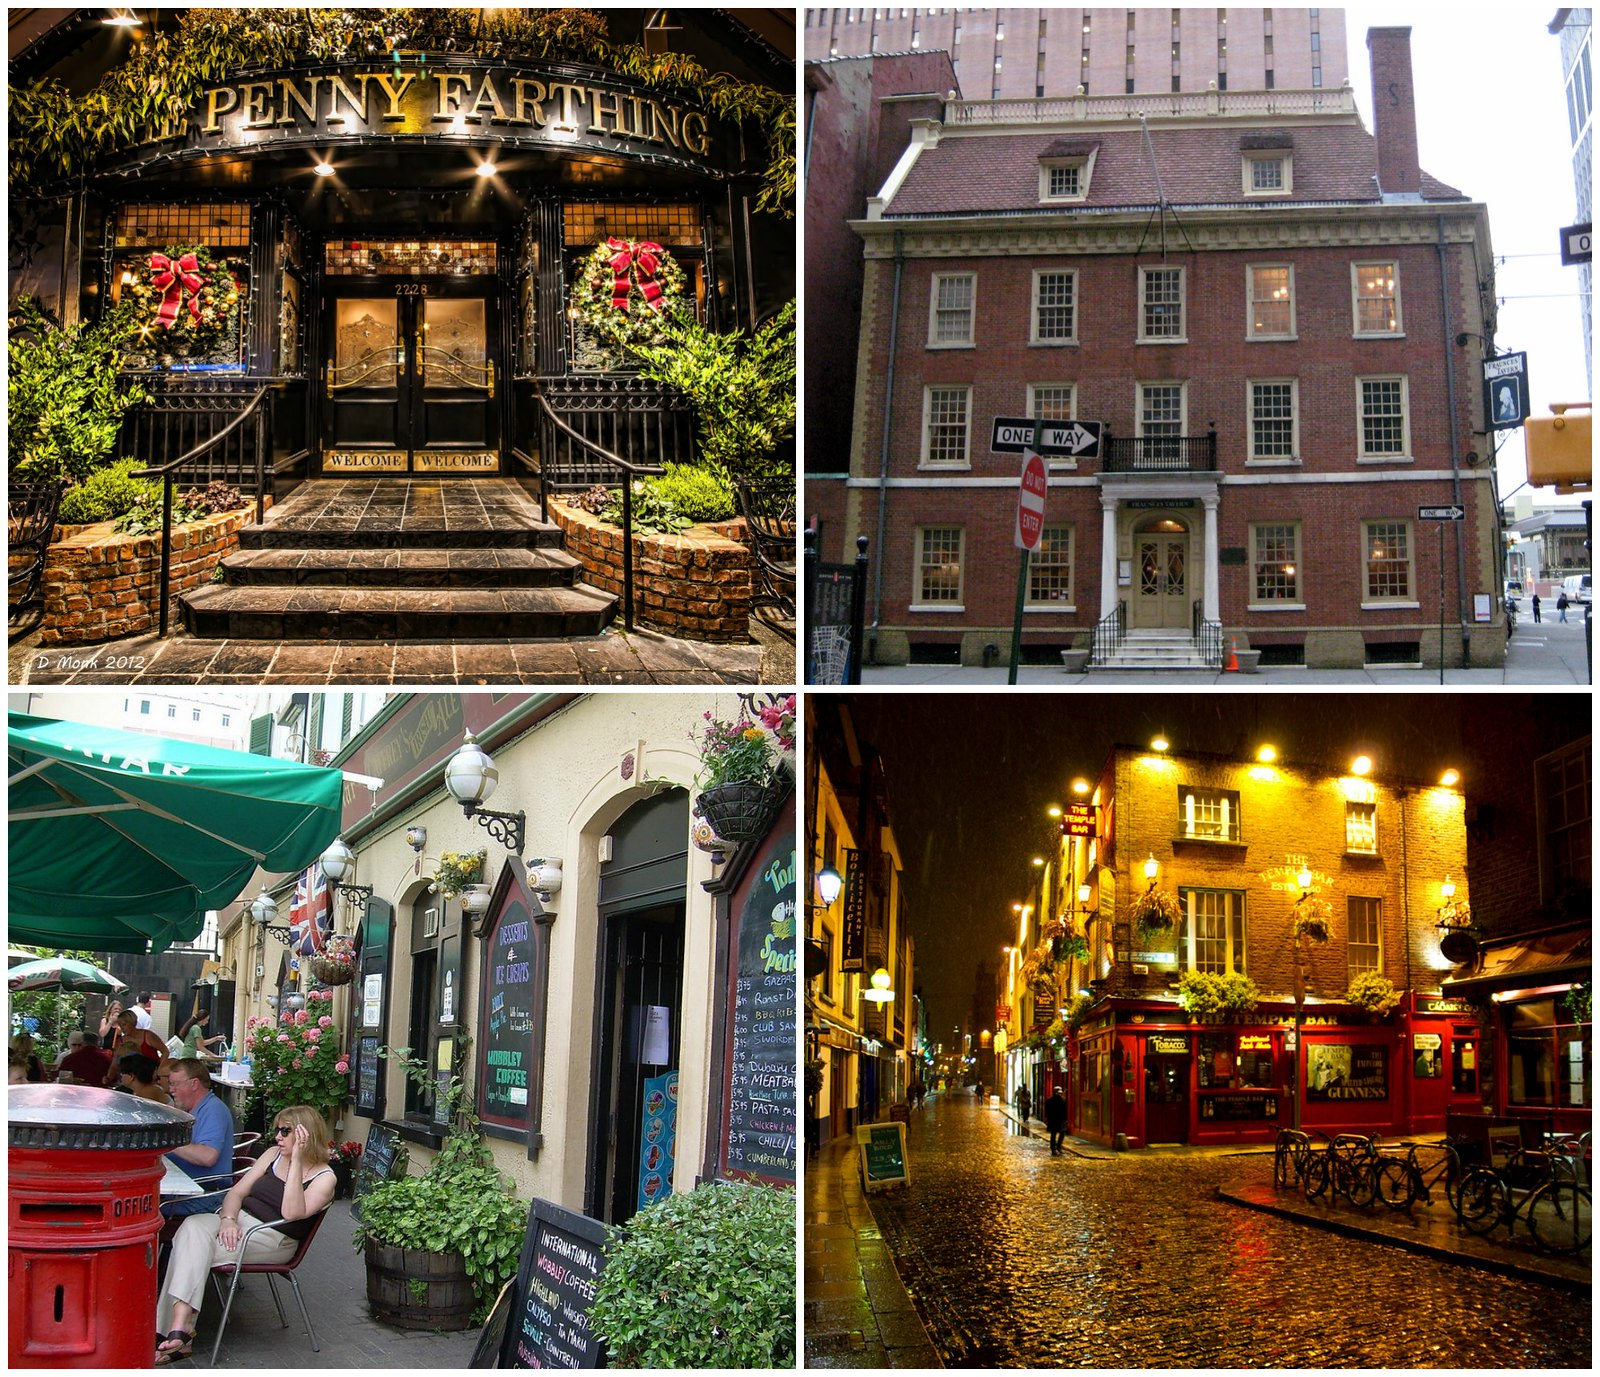 British-style pubs outside the UK. Top left: the Penny Farthing Pub, Oak Bay, B.C. (credit dvdmnk). Top right: Fraunces Tavern, New York City (credit Wally Gobetz). Bottom left: English Pub, Gibraltar (credit Allan Watt). Bottom right: Temple Bar Pub, Dublin, Ireland (Raphael Schon)